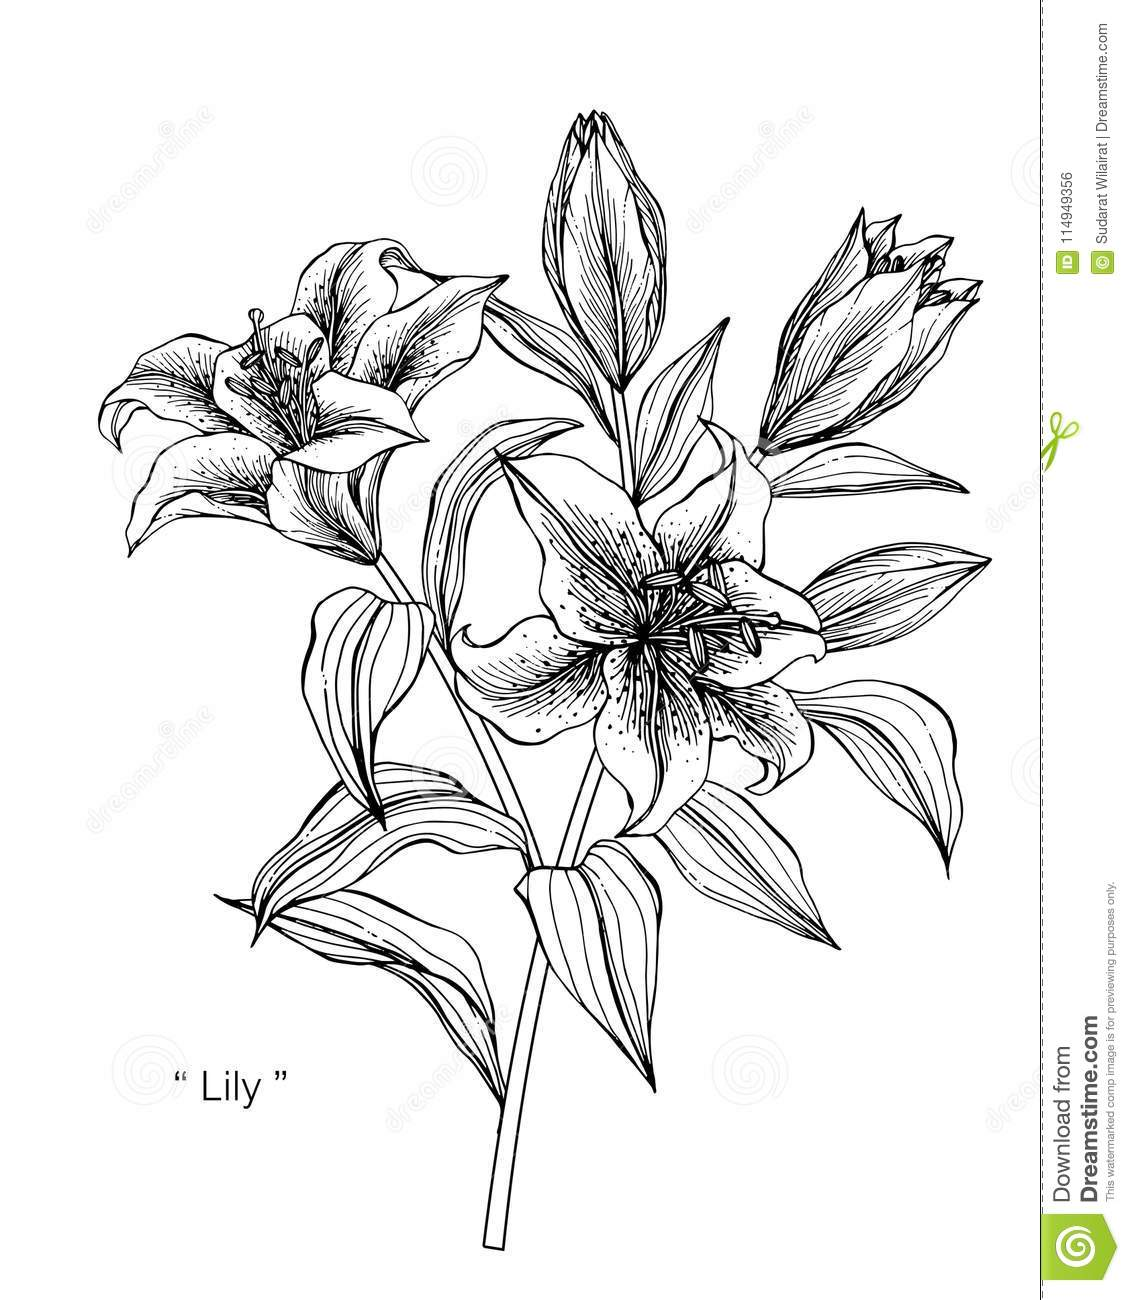 Lily Flower Drawing Illustration Black And White With